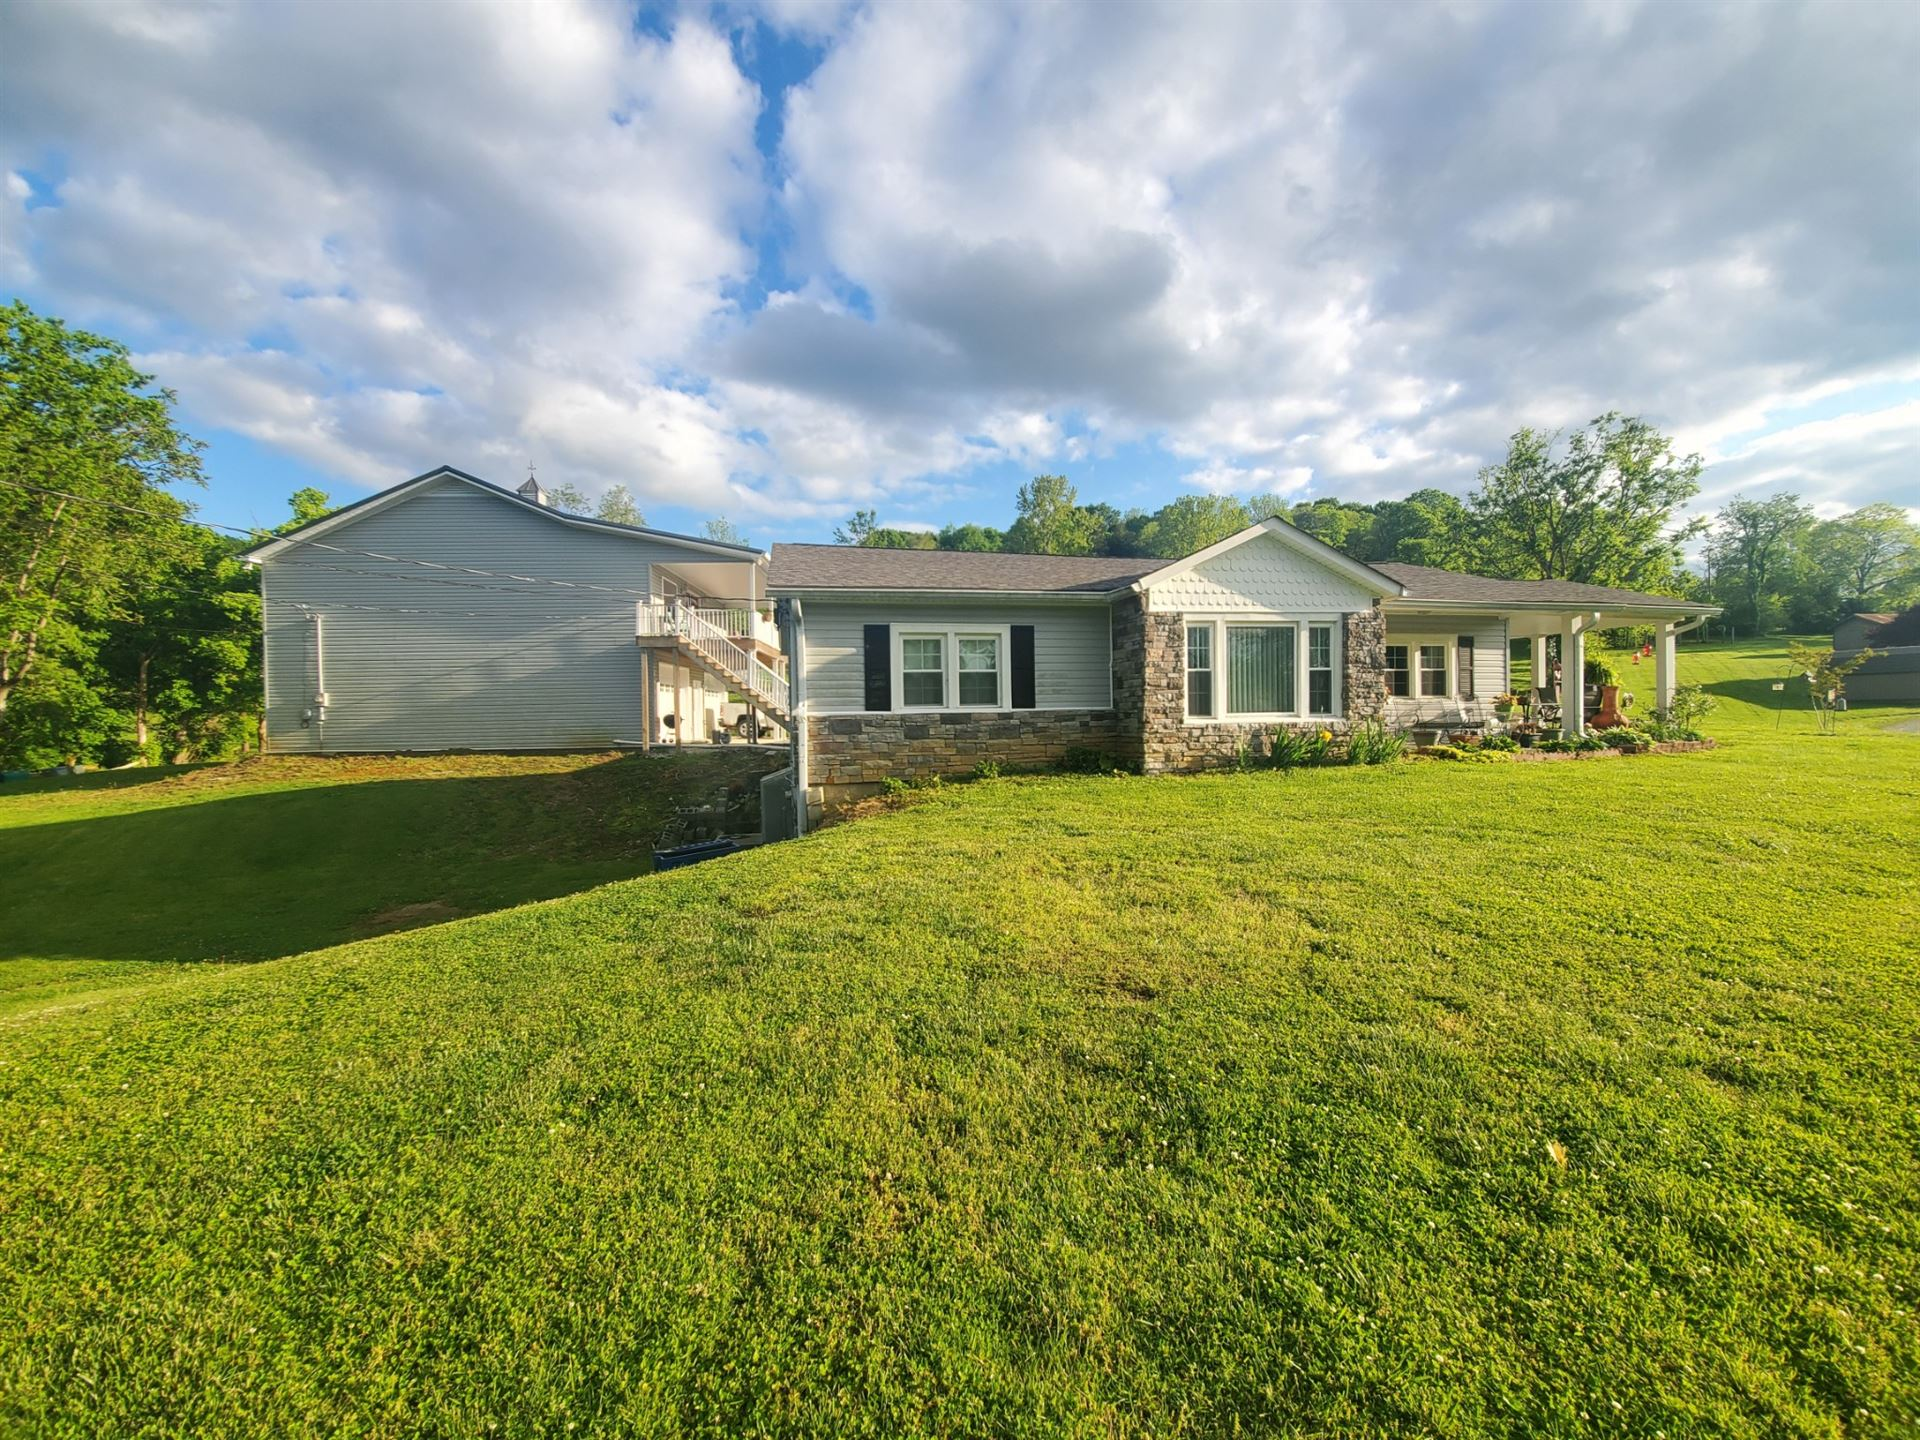 162 Cookeville Hwy, Carthage, TN 37030 - MLS#: 2251115